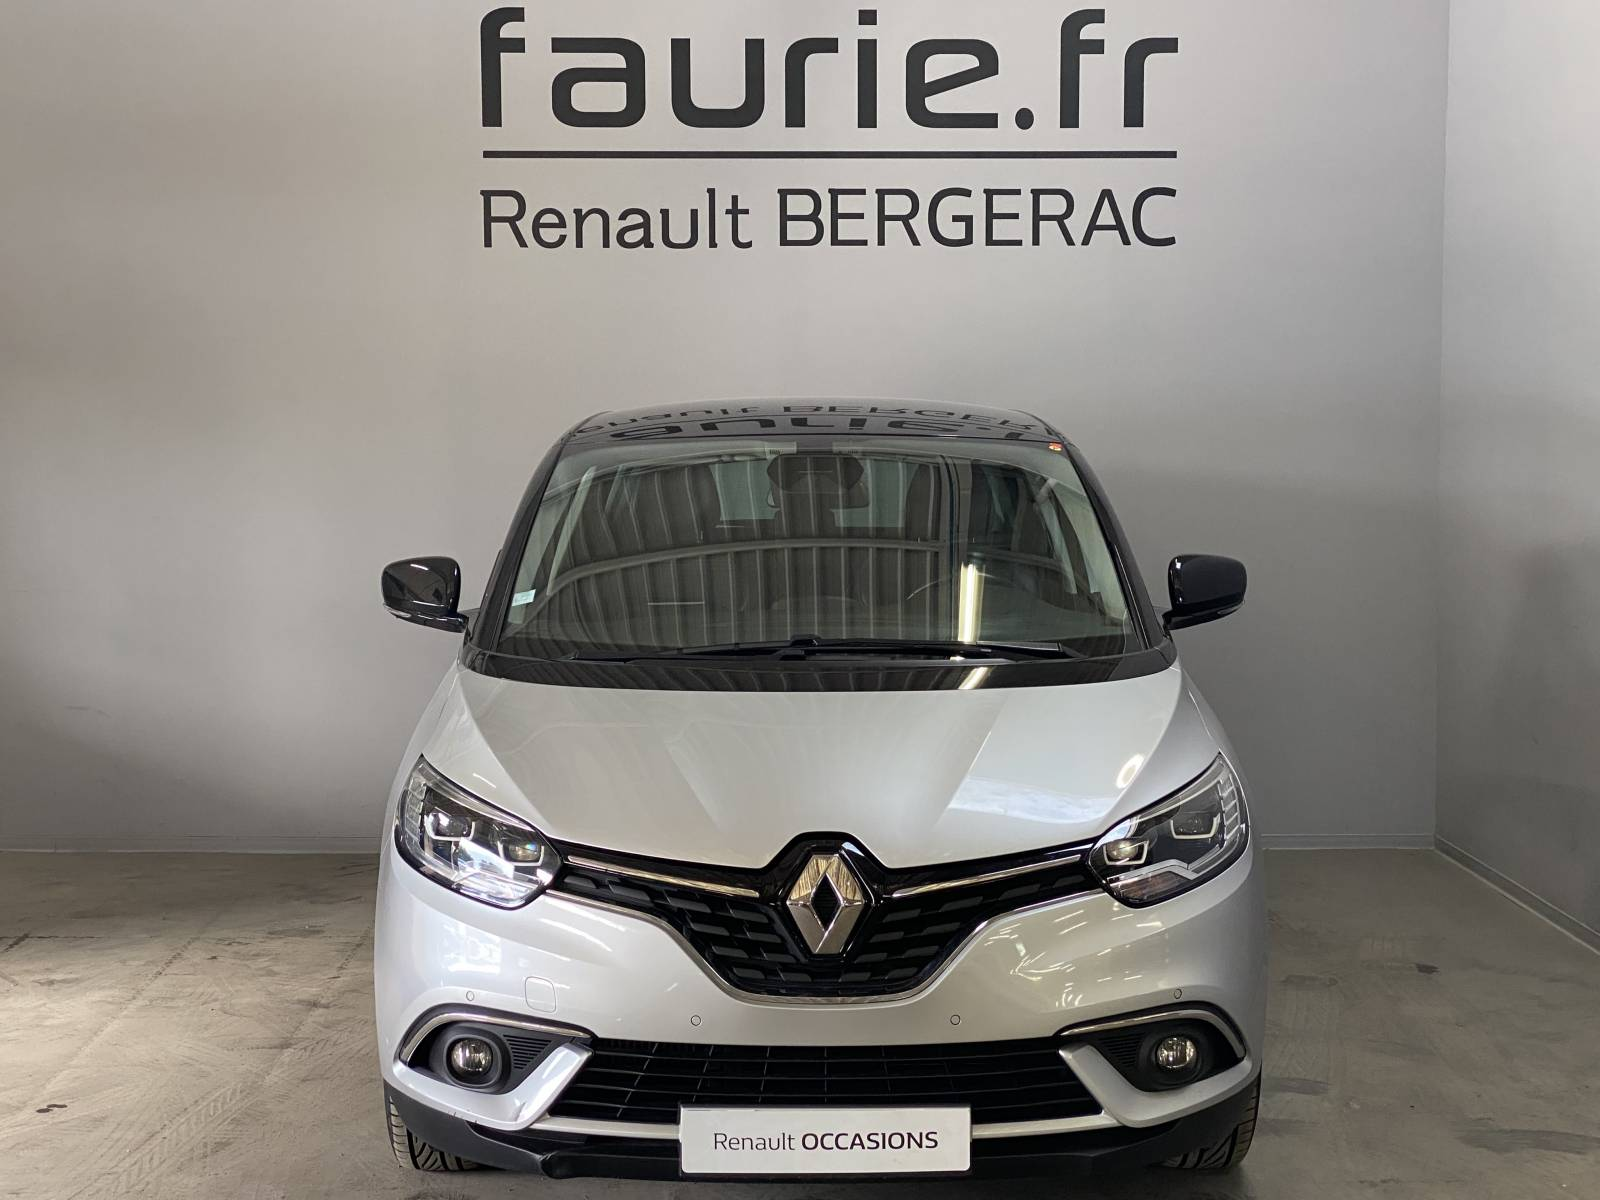 RENAULT Scenic dCi 130 Energy - véhicule d'occasion - Site Internet Faurie - Renault - Faurie Auto Bergerac - 24100 - Bergerac - 2